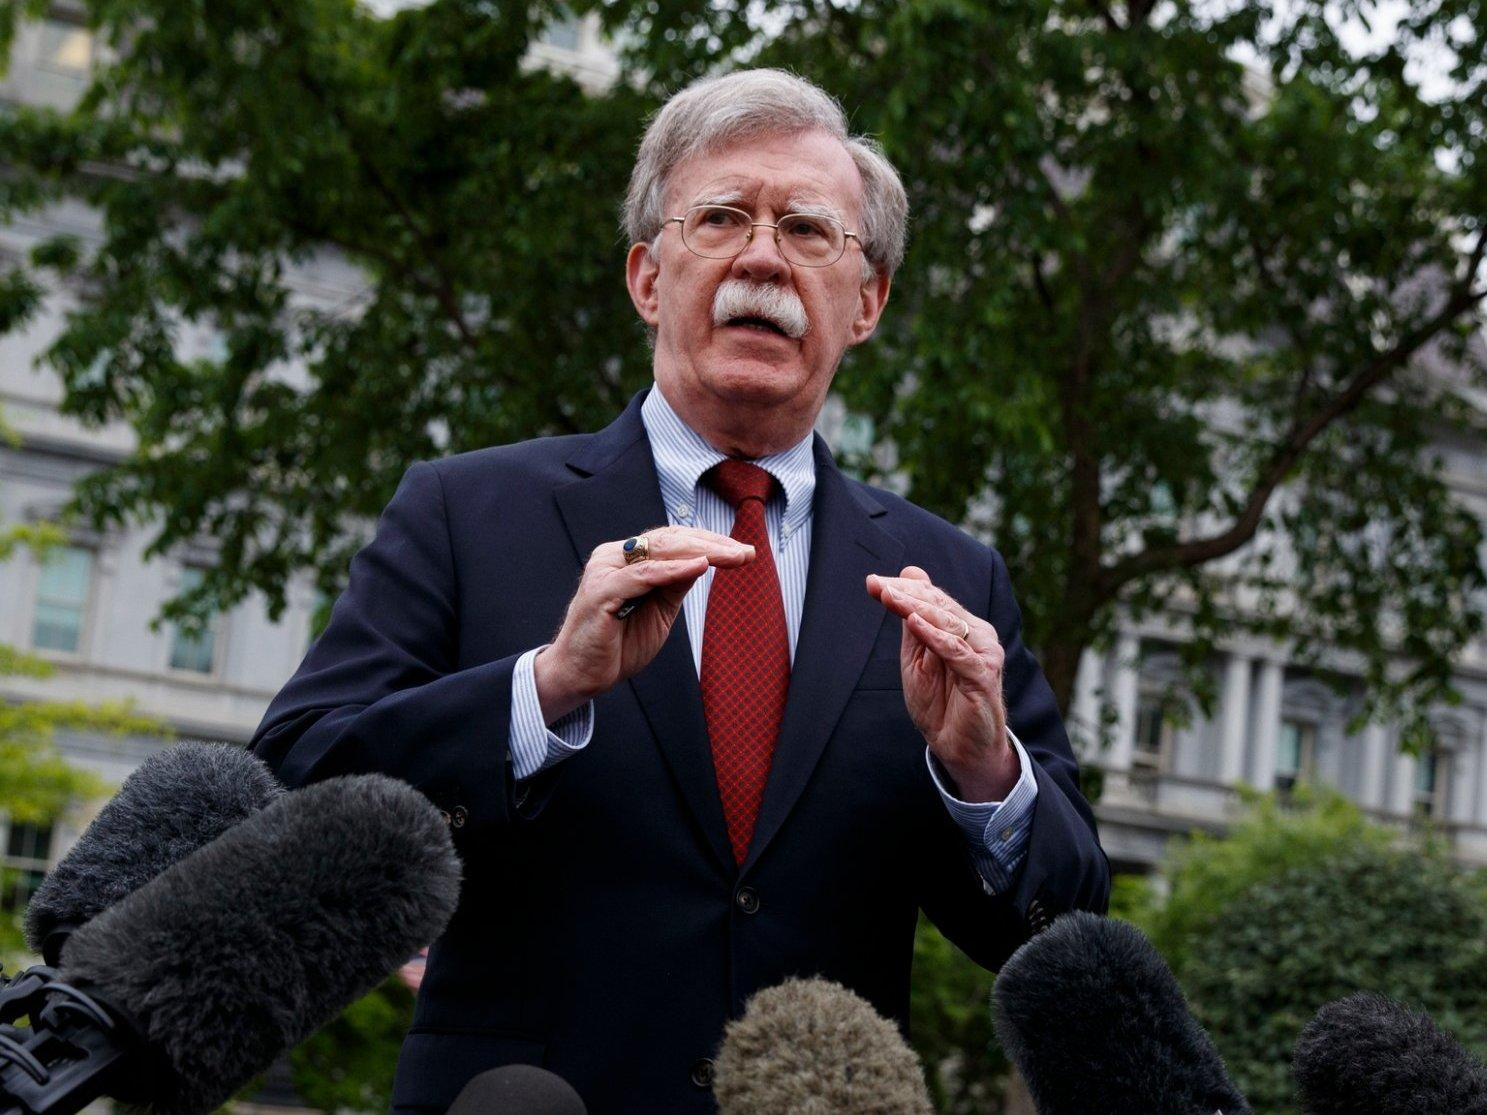 """The chances of war between Iran and the United States have just increased again. A small mistake from either side could now lead to dangerous results — and easily escalate into a disaster for both sides, as well as the entire Middle East.US National Security Advisor John Bolton announced that the US is deploying the USS Abraham Lincoln Carrier Strike Group and a bomber task force to the Middle East in response to """"troubling and escalatory indications and warnings"""" from Iran yesterday.It is no secret that Bolton wants a war with Iran aimed at changing the country's government. In March 2015, at the height of nuclear negotiations between Iran and the Obama administration, Bolton wrote an op-ed titled """"To stop Iran's bomb, bomb Iran"""" in the New York Times, where he suggested the United States or Israel should attack Iran's nuclear infrastructure. He also added that military attacks should be combined with """"vigorous American support for Iran's opposition, aimed at regime change in Tehran."""" Similarly, in 2017, at the gathering of Iranian opposition group Mujahedeen-e Khalq or MEK, Bolton said the policy of the United States should be """"the overthrow of the mullahs' regime in Tehran."""" John Bolton was one of the main architects of the 2003 invasion of Iraq by George W Bush. And today he seems to be playing a similar tune about Iran.However, President Trump does not want another war in the Middle East. He constantly criticized his Republican and Democratic predecessors for waging costly conflicts in the region, and ran an election campaign on the promise of ending those wars and avoiding new ones.Trump does not seem to have an obsession with regime change in Iran, either. What he really wanted was to tear up the Obama-era nuclear deal and negotiate a """"better"""" deal (or perhaps just a new deal with his name on it, as some critics have suggested). But the current foreign policy team that surrounds the president may well push the president toward war anyway.It is important to no"""